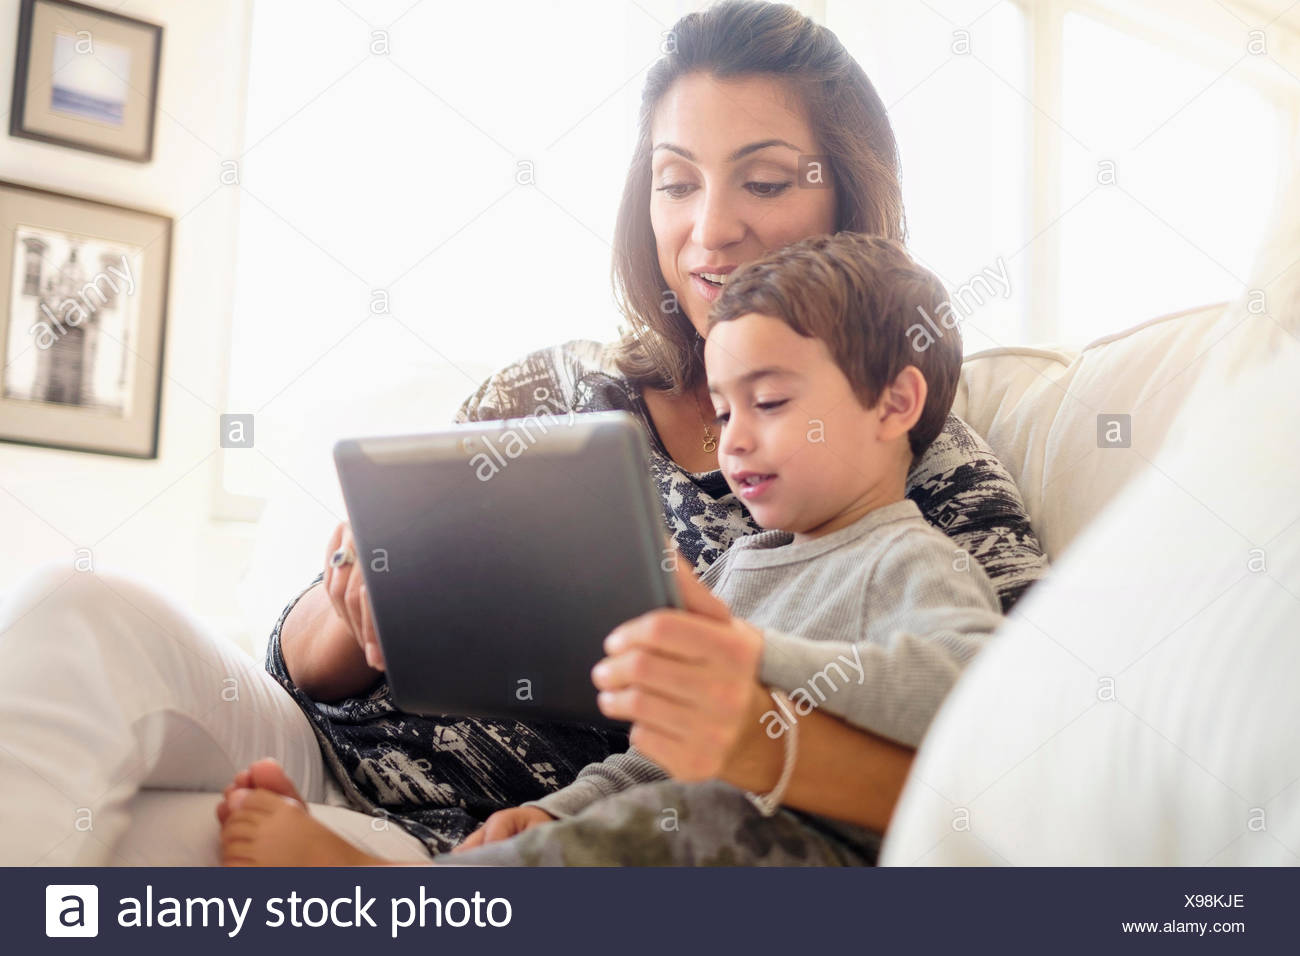 Mother reading with son (2-3) on sofa - Stock Image